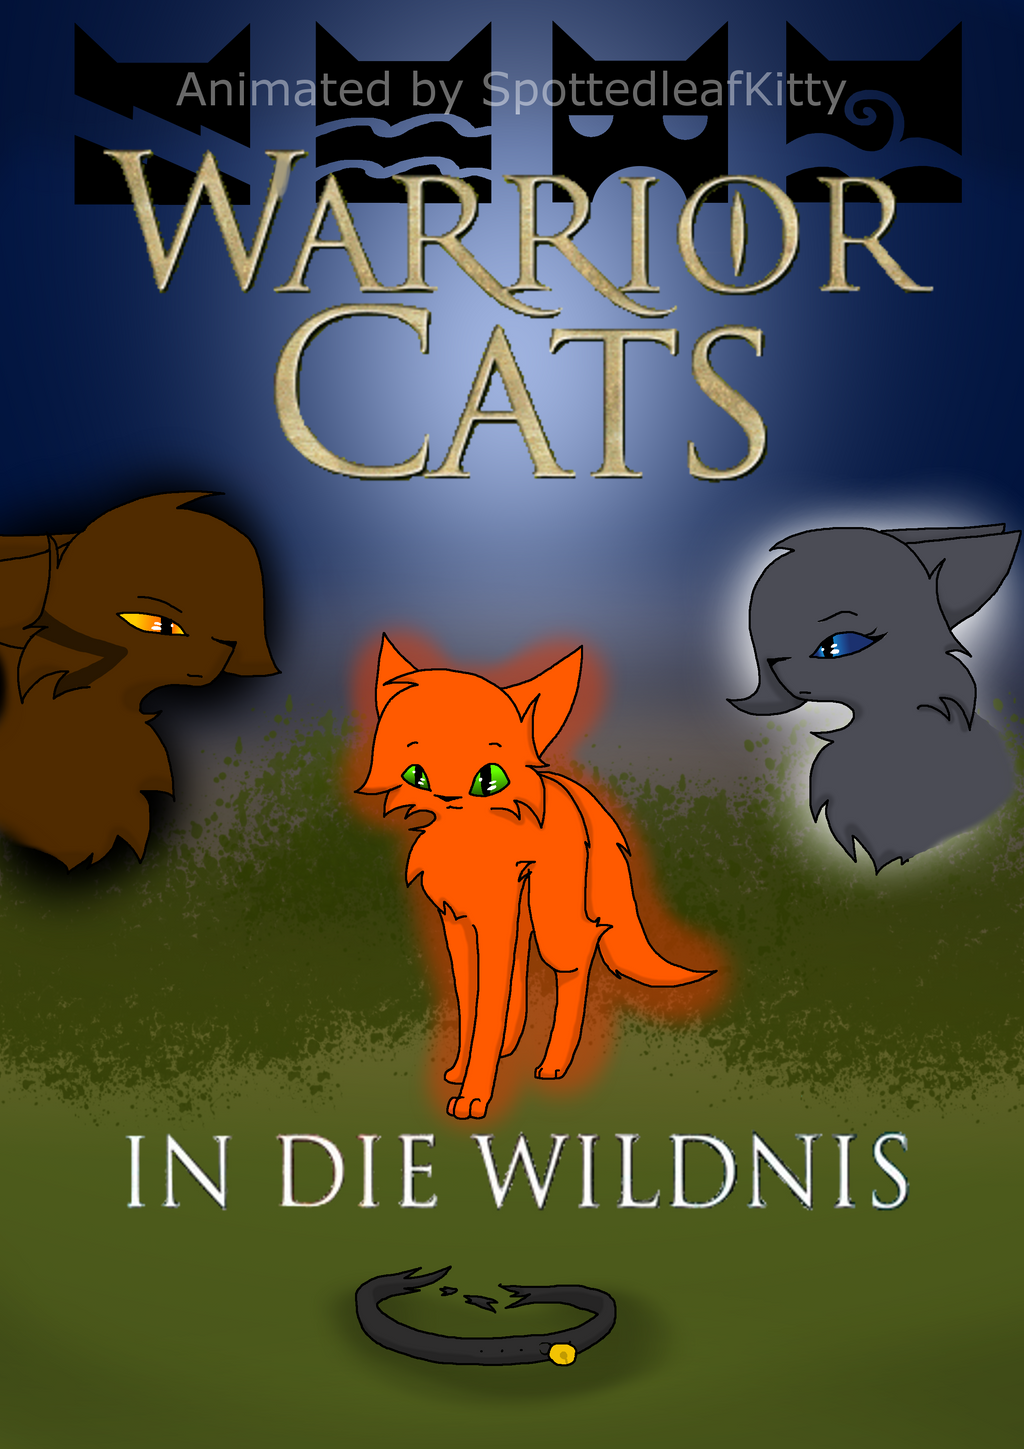 warriors into the wild - jump to - #1 - warriors: into the wild cover #2 - vacation #3 - i'm sorry #4 - something wicked comes this way prologue chapter 1.